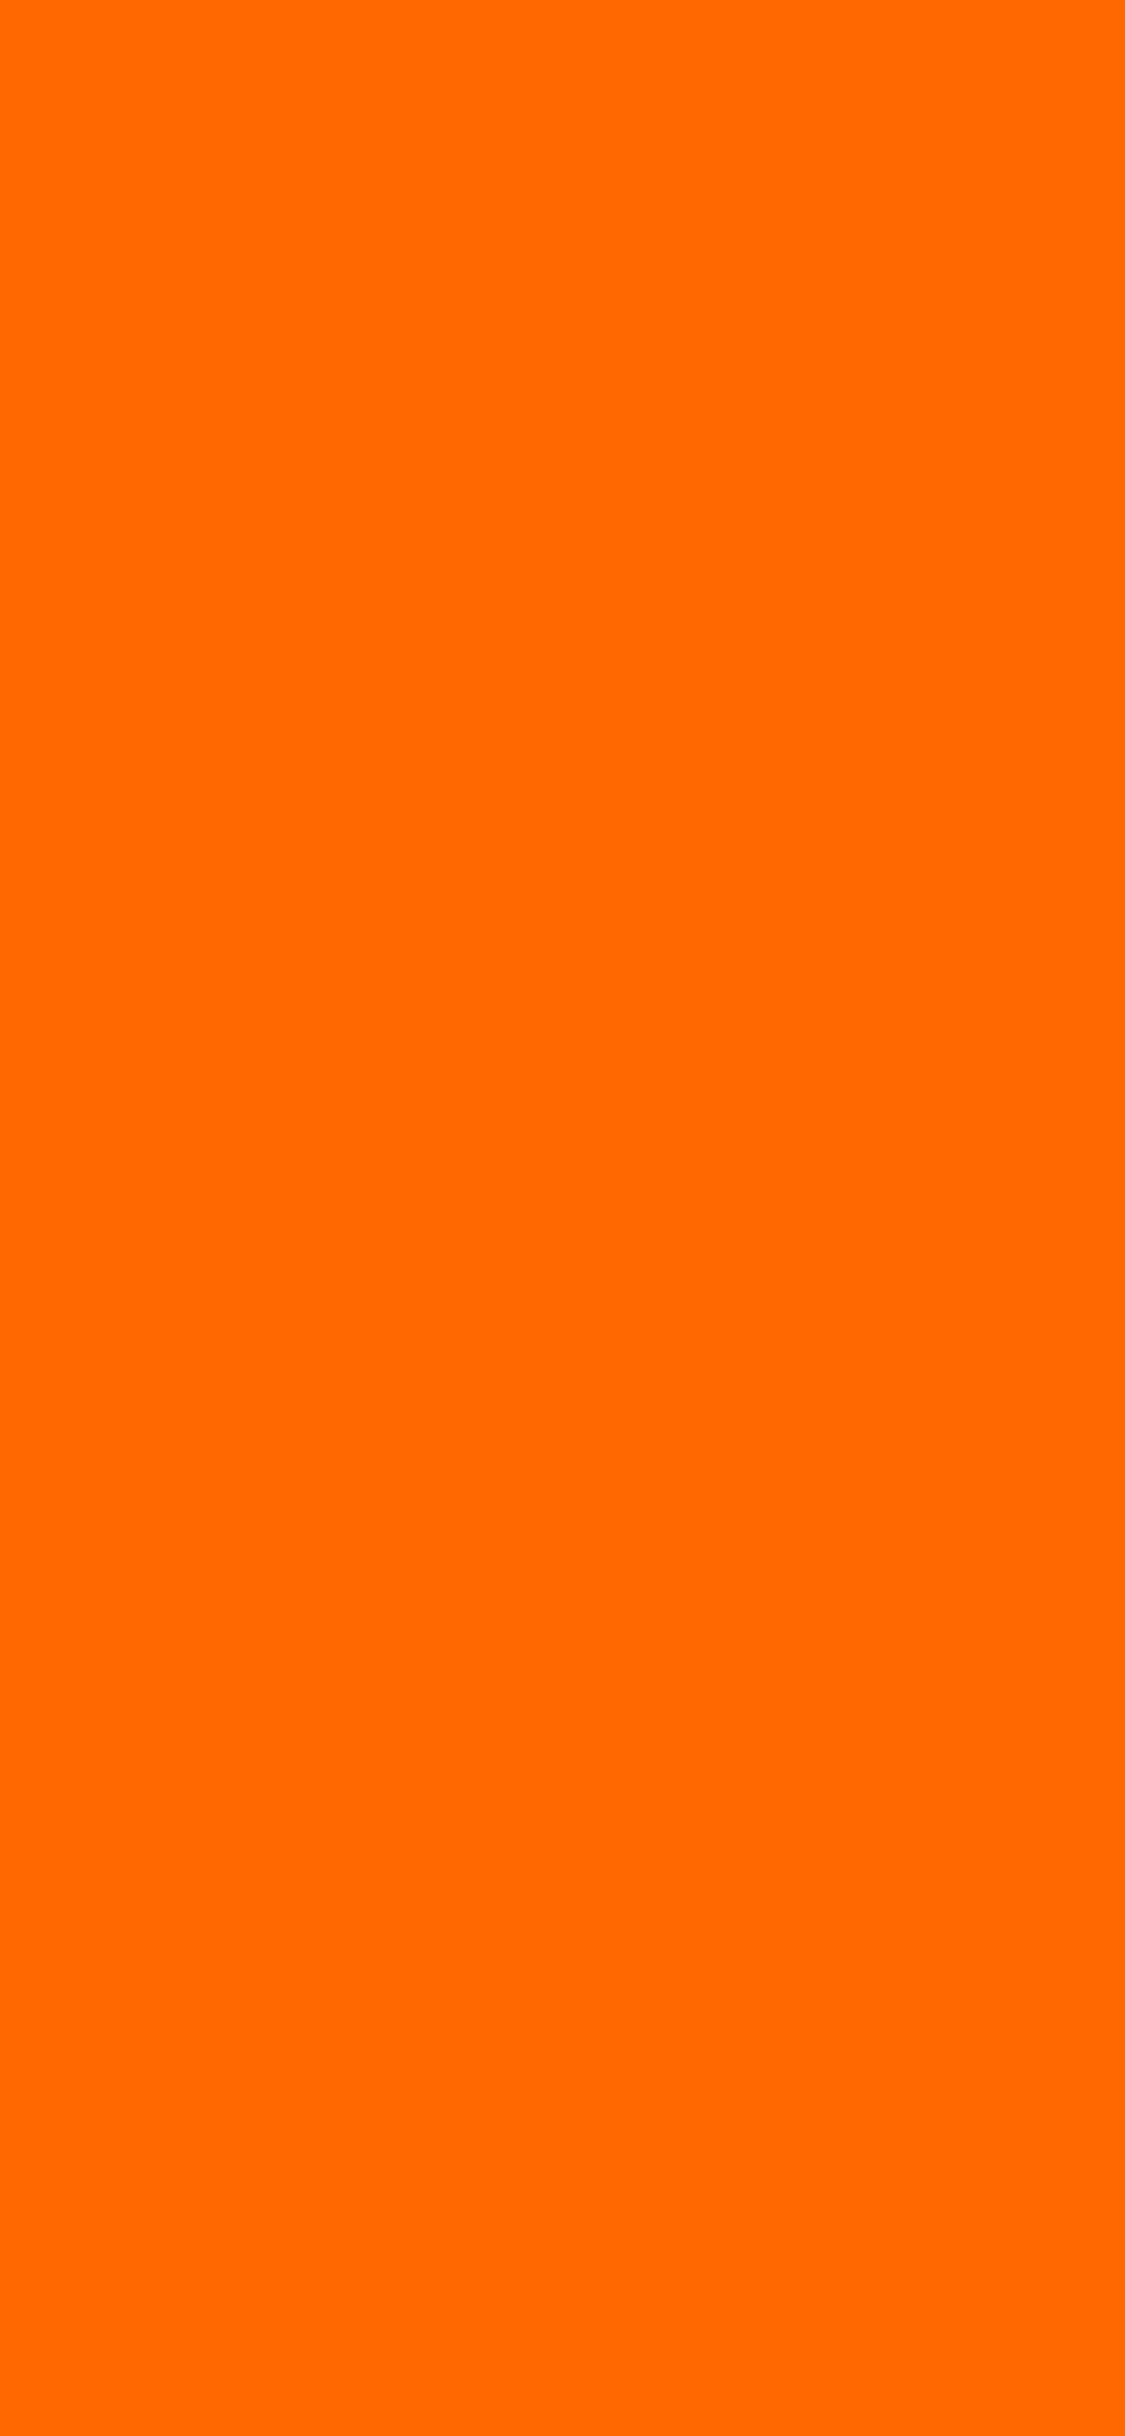 1125x2436 Safety Orange Blaze Orange Solid Color Background